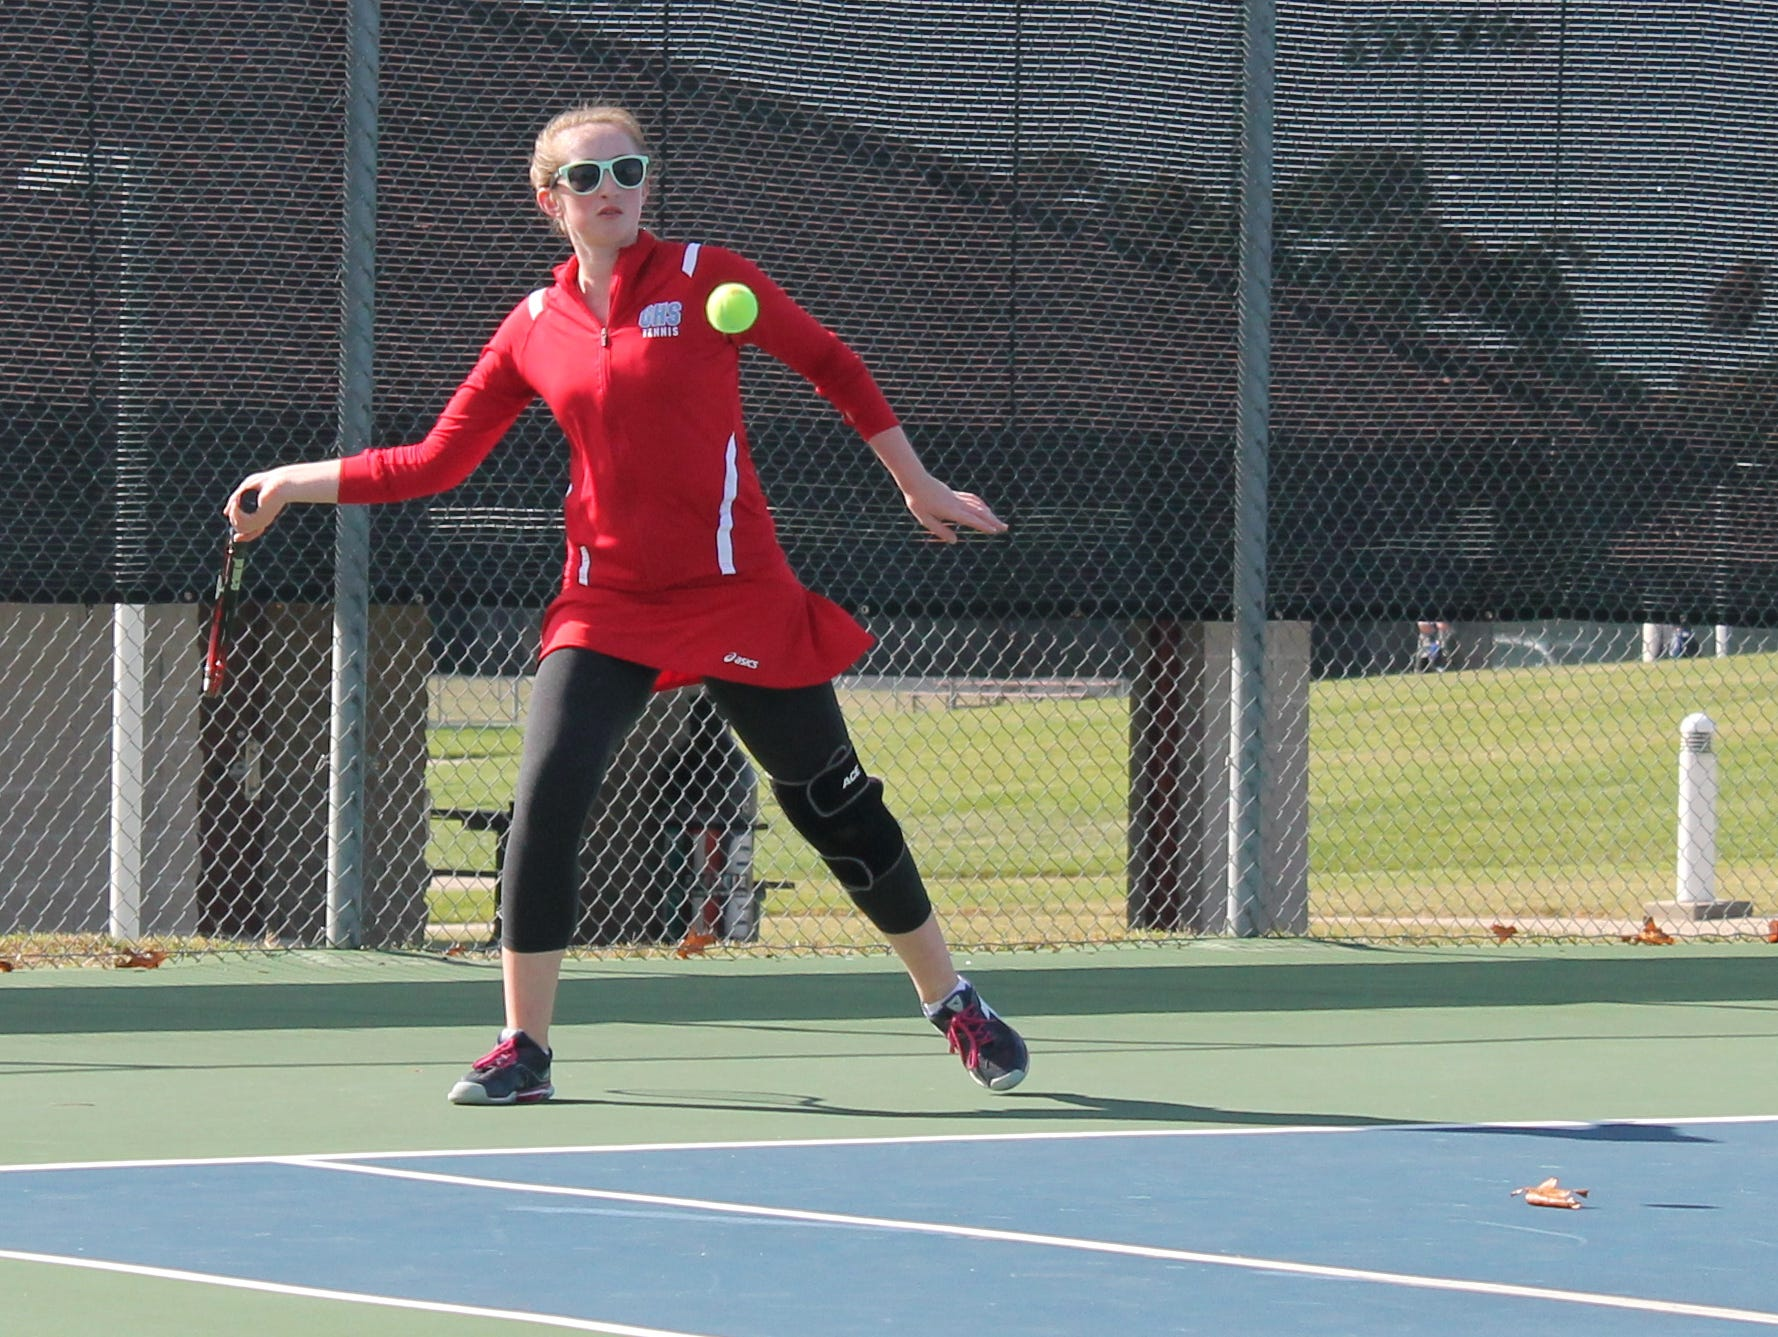 Glendale junior Rachel Dwyer finished eighth at the 2015 state tennis championships at Cooper Tennis Complex Oct. 16-17.